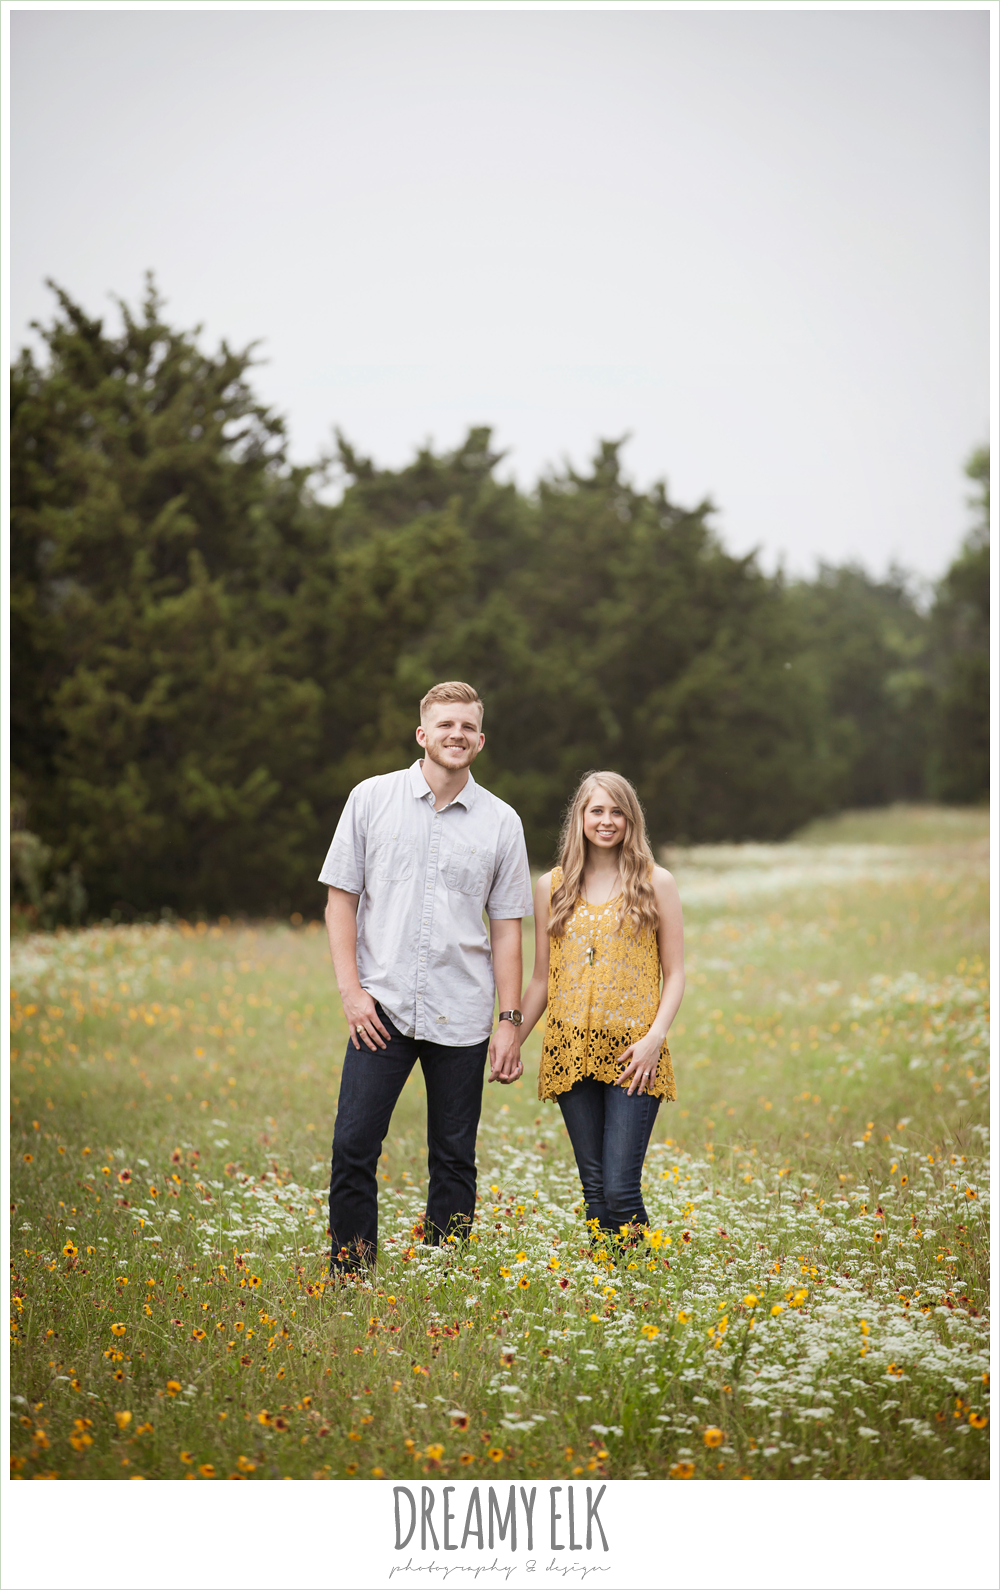 field of wild flowers, overcast engagement photo, walnut creek park, austin, texas {dreamy elk photography and design}